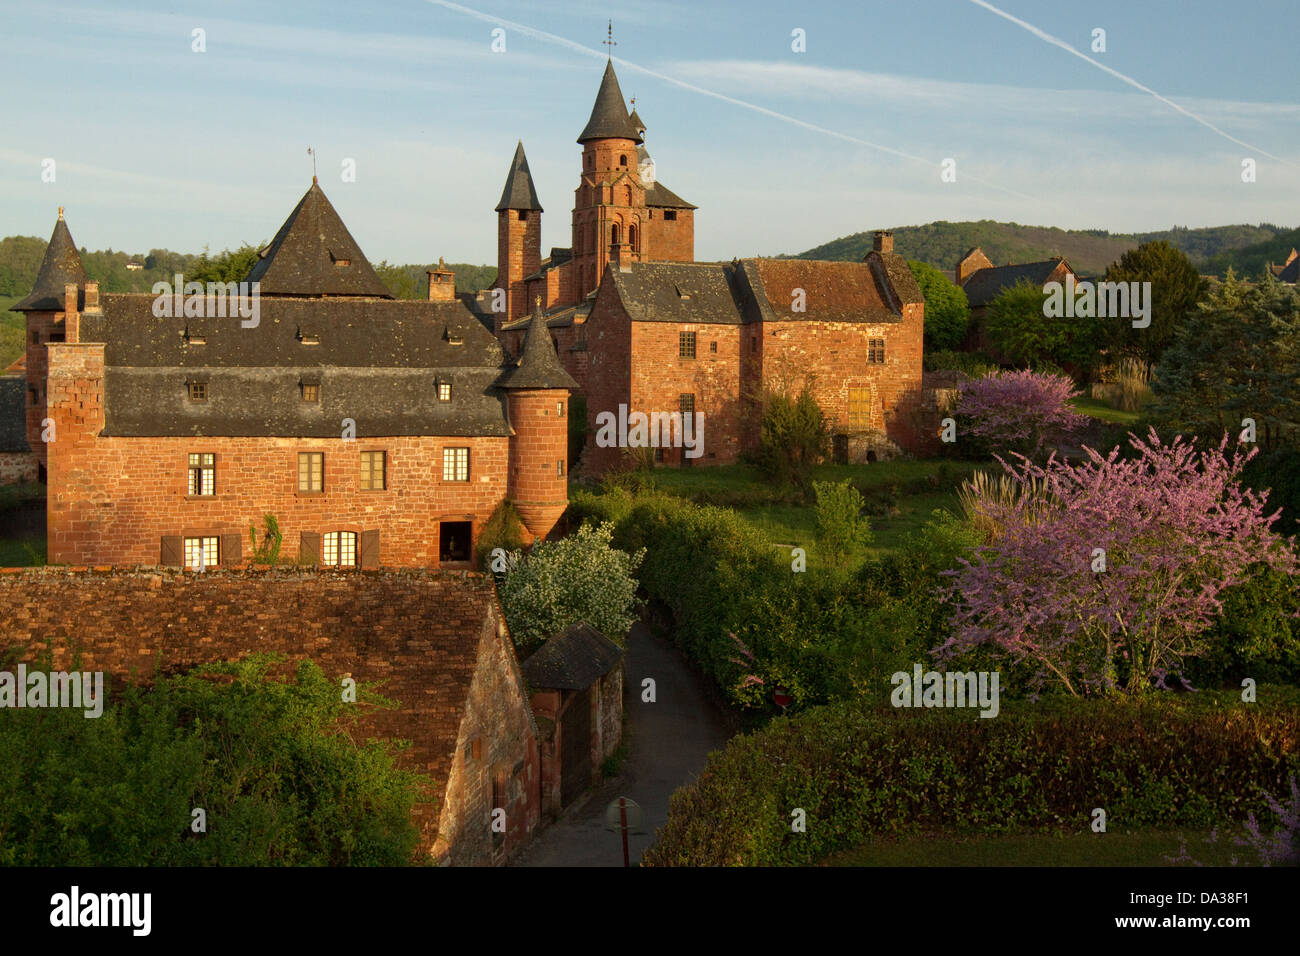 Collonges-la-Rouge in Correze, Limousin France - Stock Image